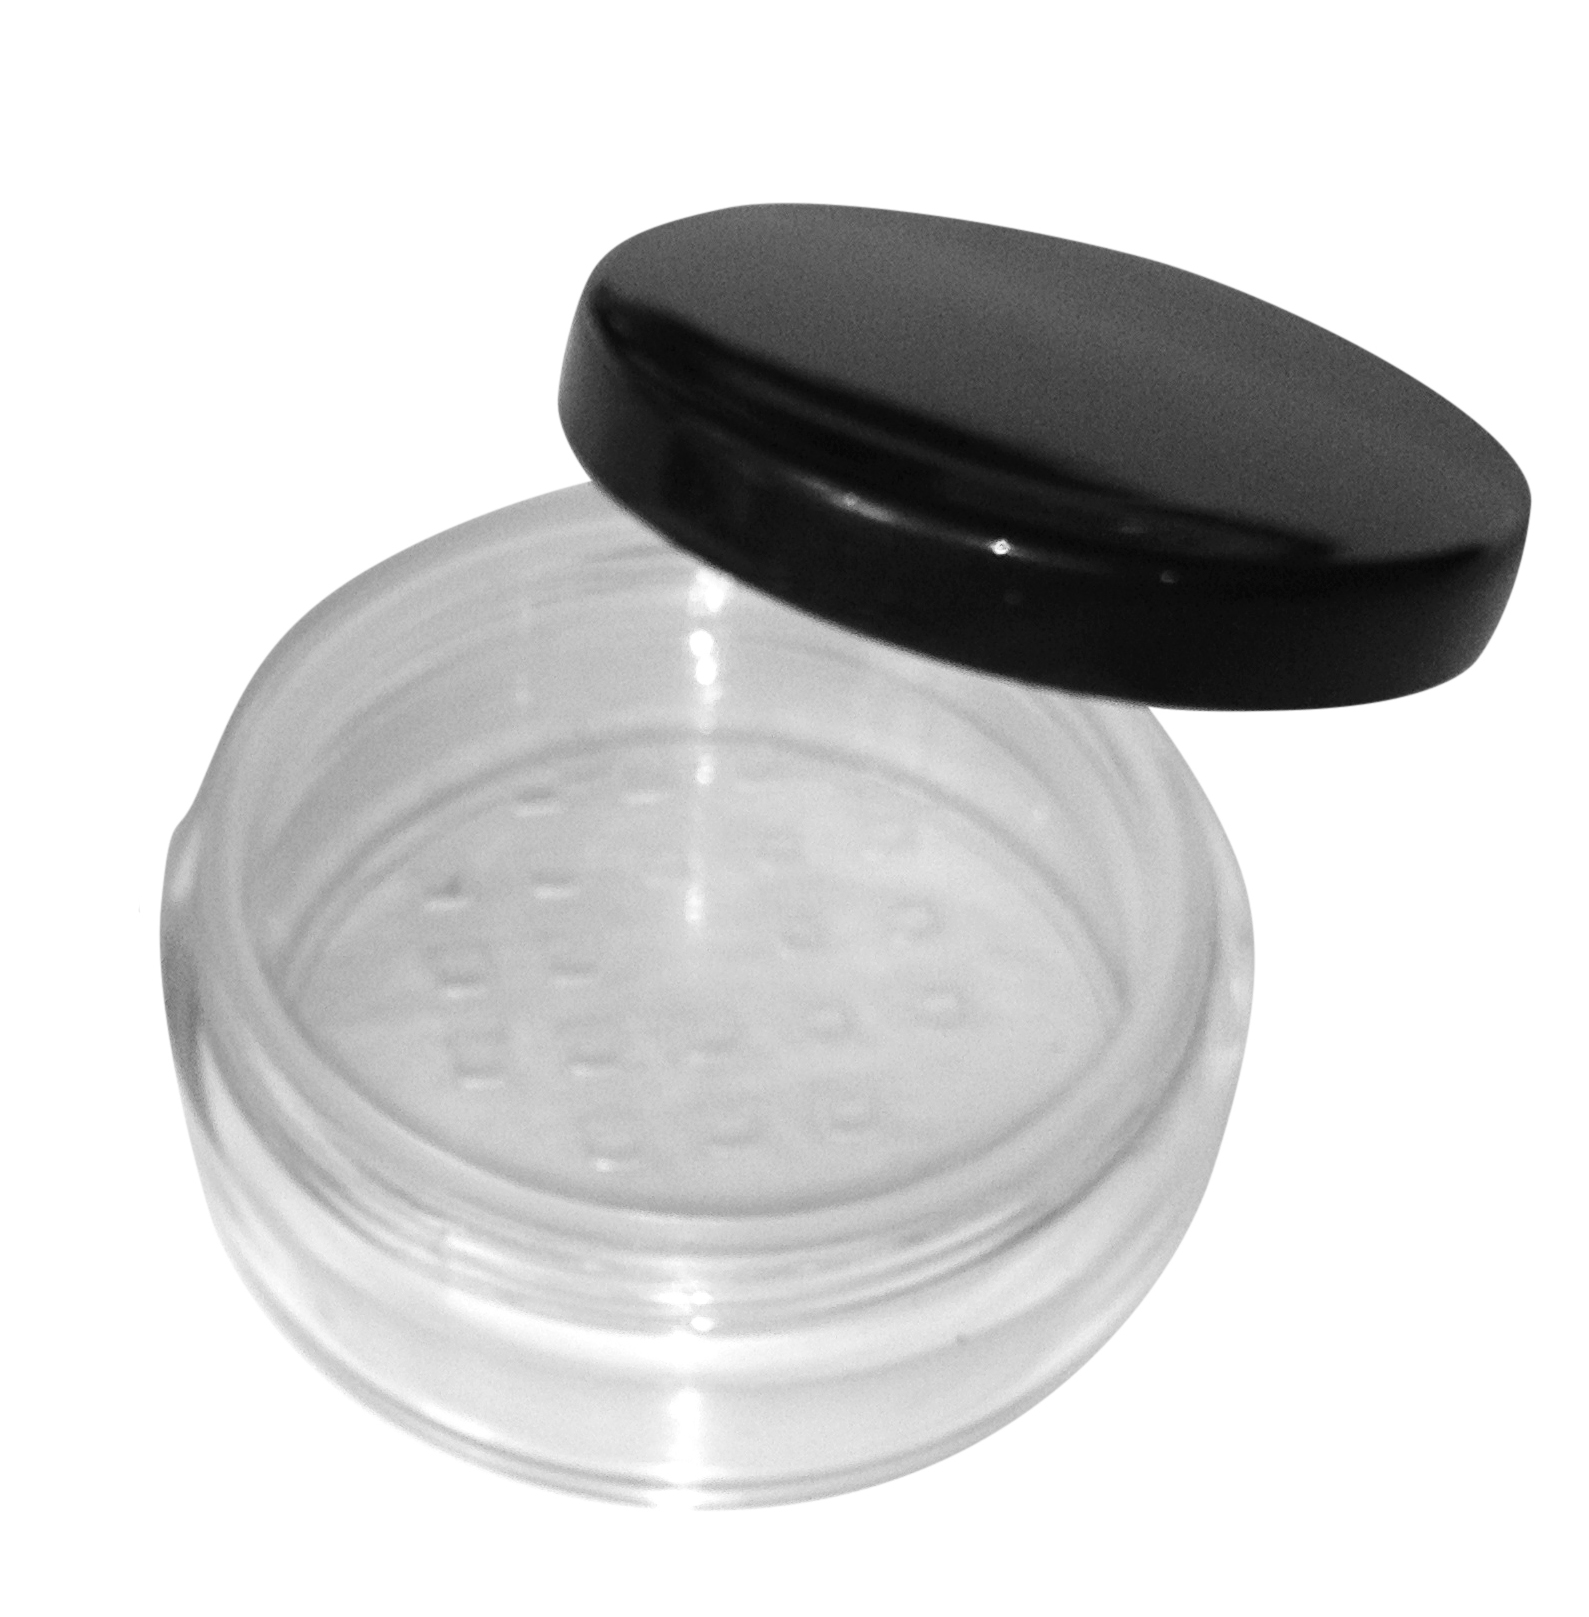 20ml empty cosmetic sifter jar